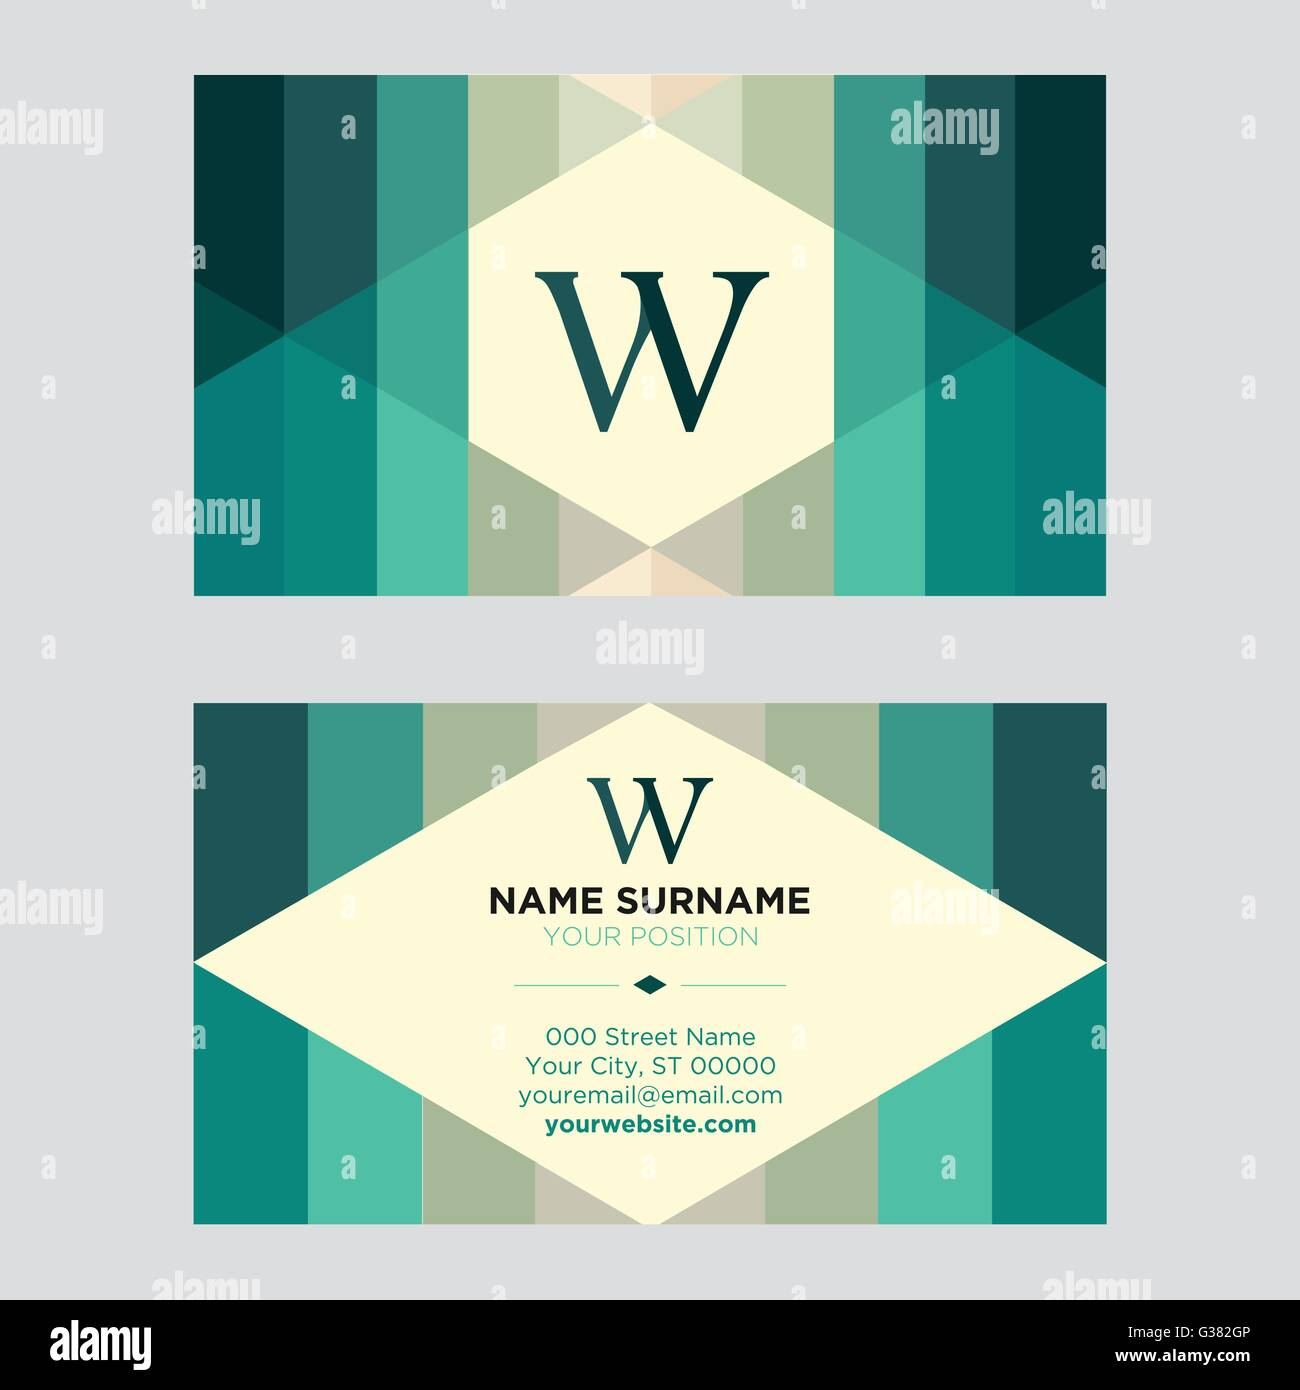 Business card color ideas gallery card design and card template color ideas for business cards image collections card design and best images about cards color combinations colourmoves